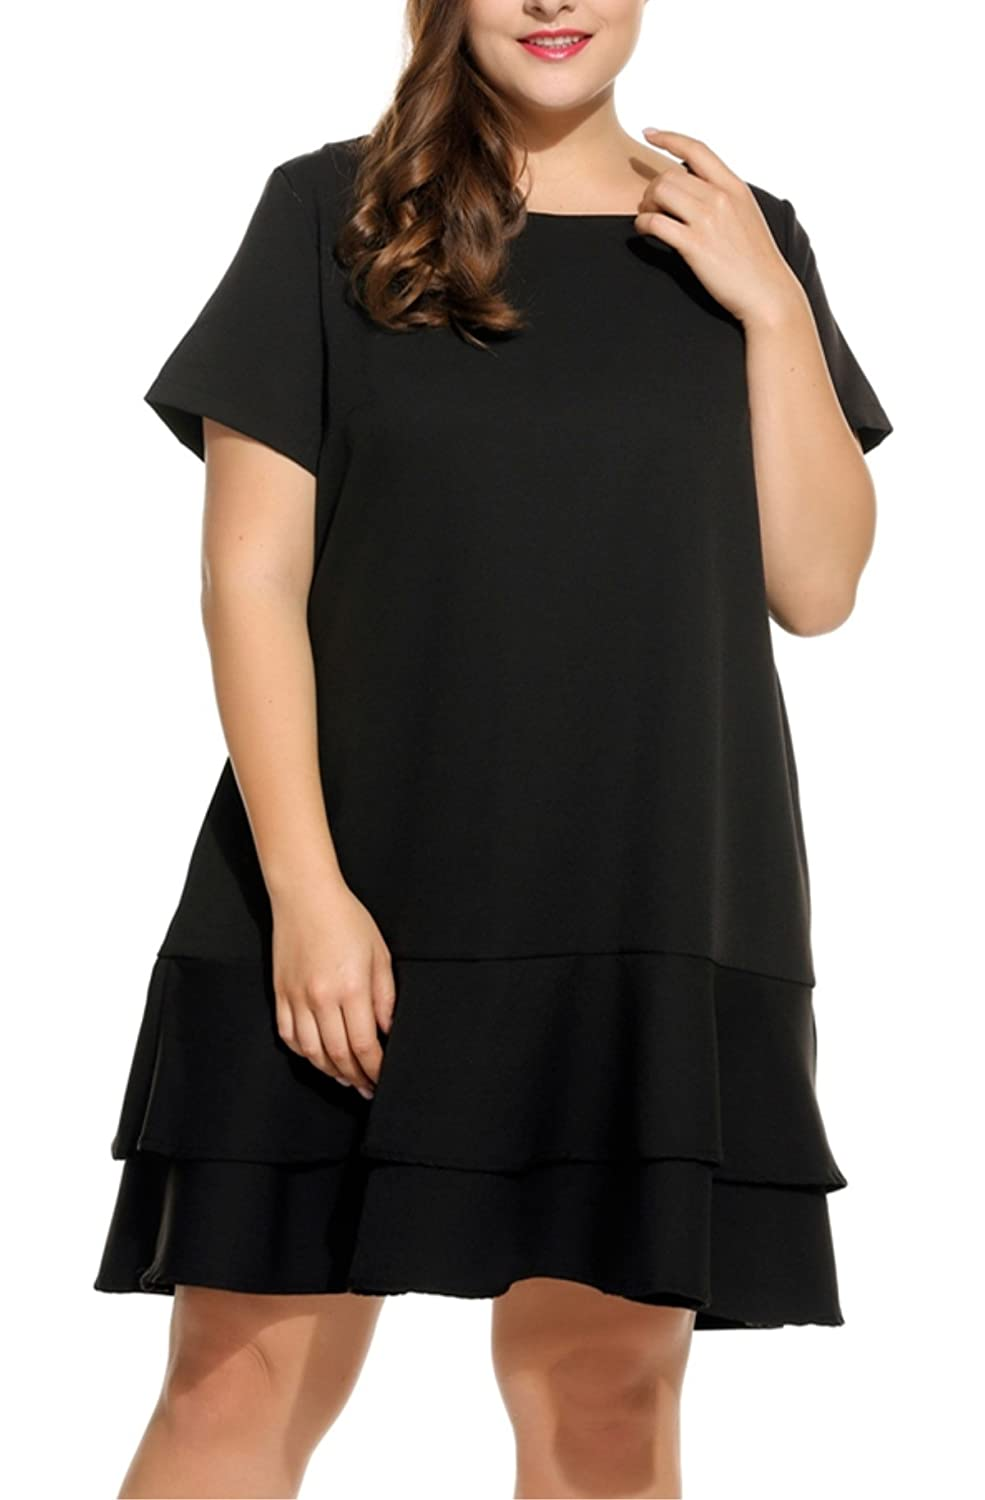 1920s Plus Size Dresses Kancystore Women Plus Size Short Sleeve Round Neck Solid Double Layer Ruffles Hem Dress L-4XL $25.99 AT vintagedancer.com